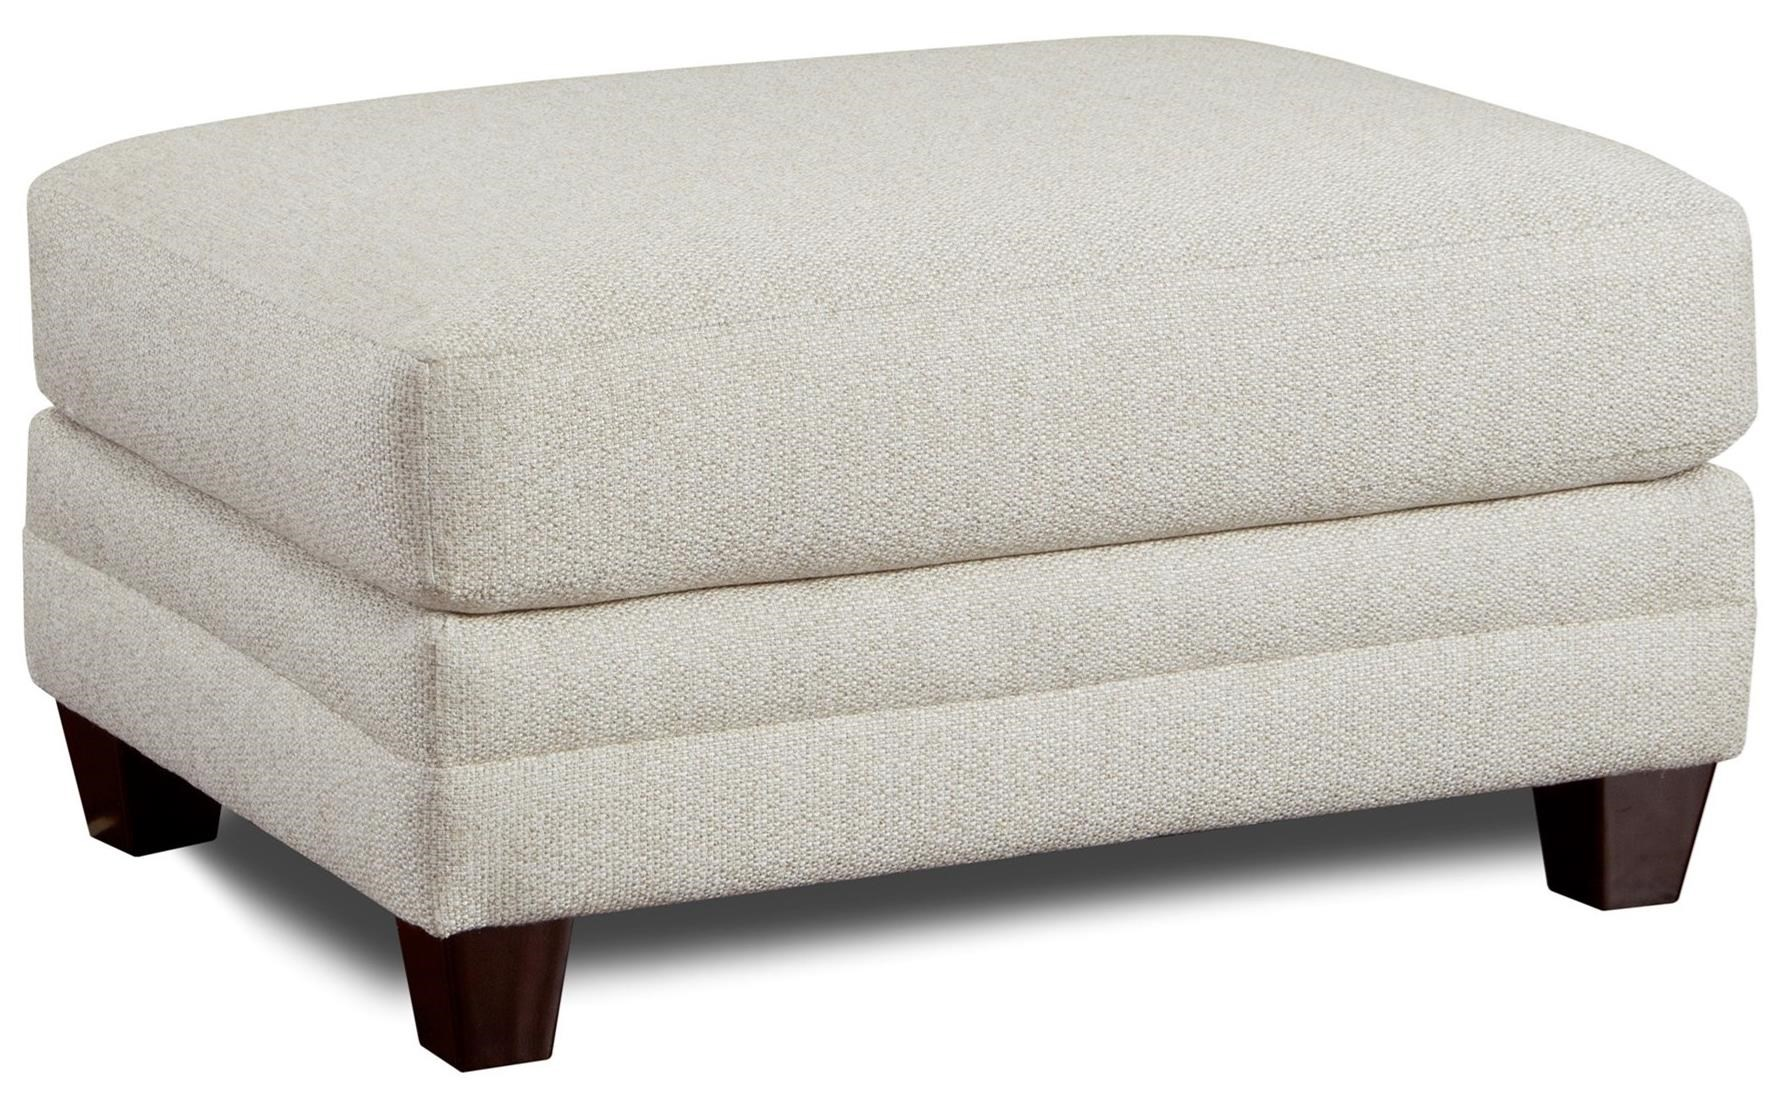 4480-KP Ottoman by Fusion Furniture at Wilson's Furniture